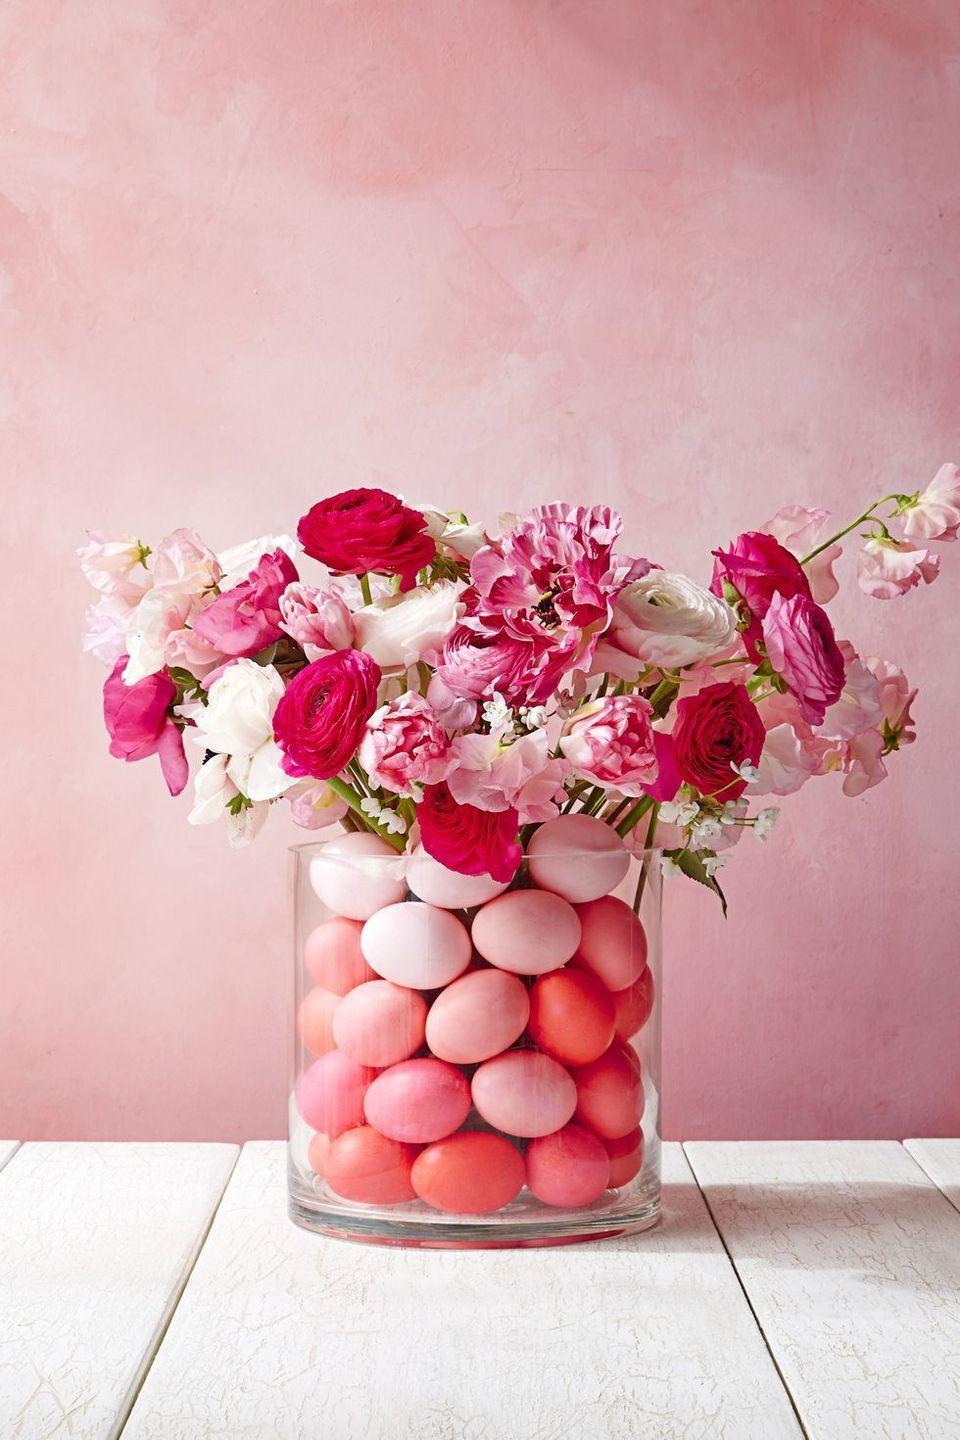 """<p>Dye some ombre eggs and arrange them in a clear glass vase. Then match the colors of the eggs with a nice bouquet of fresh flowers for an explosion of color. </p><p><strong><a class=""""link rapid-noclick-resp"""" href=""""https://www.amazon.com/Chefmaster-Liqua-gel-Coloring-Liquid-Fondant/dp/B07M6R724S/ref=sr_1_2?crid=2U078VYR4VKR5&keywords=easter+egg+dye&qid=1581611178&sprefix=easter+egg+dy%2Caps%2C155&sr=8-2&tag=syn-yahoo-20&ascsubtag=%5Bartid%7C10070.g.1751%5Bsrc%7Cyahoo-us"""" rel=""""nofollow noopener"""" target=""""_blank"""" data-ylk=""""slk:SHOP EASTER EGG DYE"""">SHOP EASTER EGG DYE</a></strong><br> </p>"""